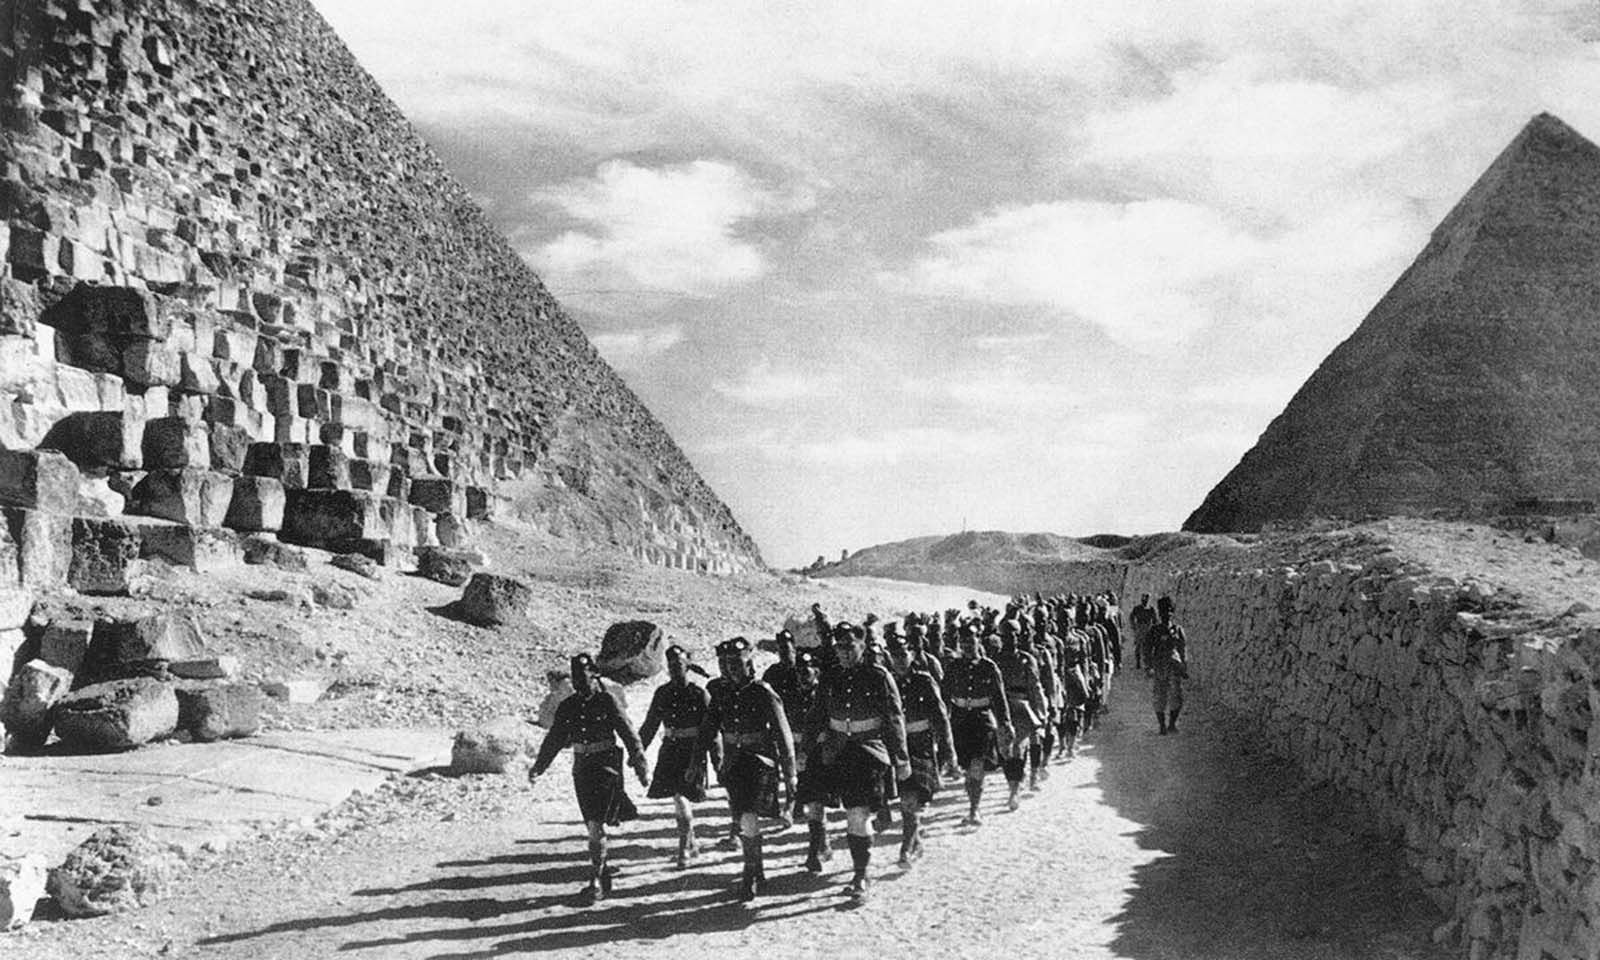 Cameron Highlanders, a Scottish infantry regiment of the British Army, and Indian troops march past the Great Pyramid in the North African Desert, on December 9, 1940.